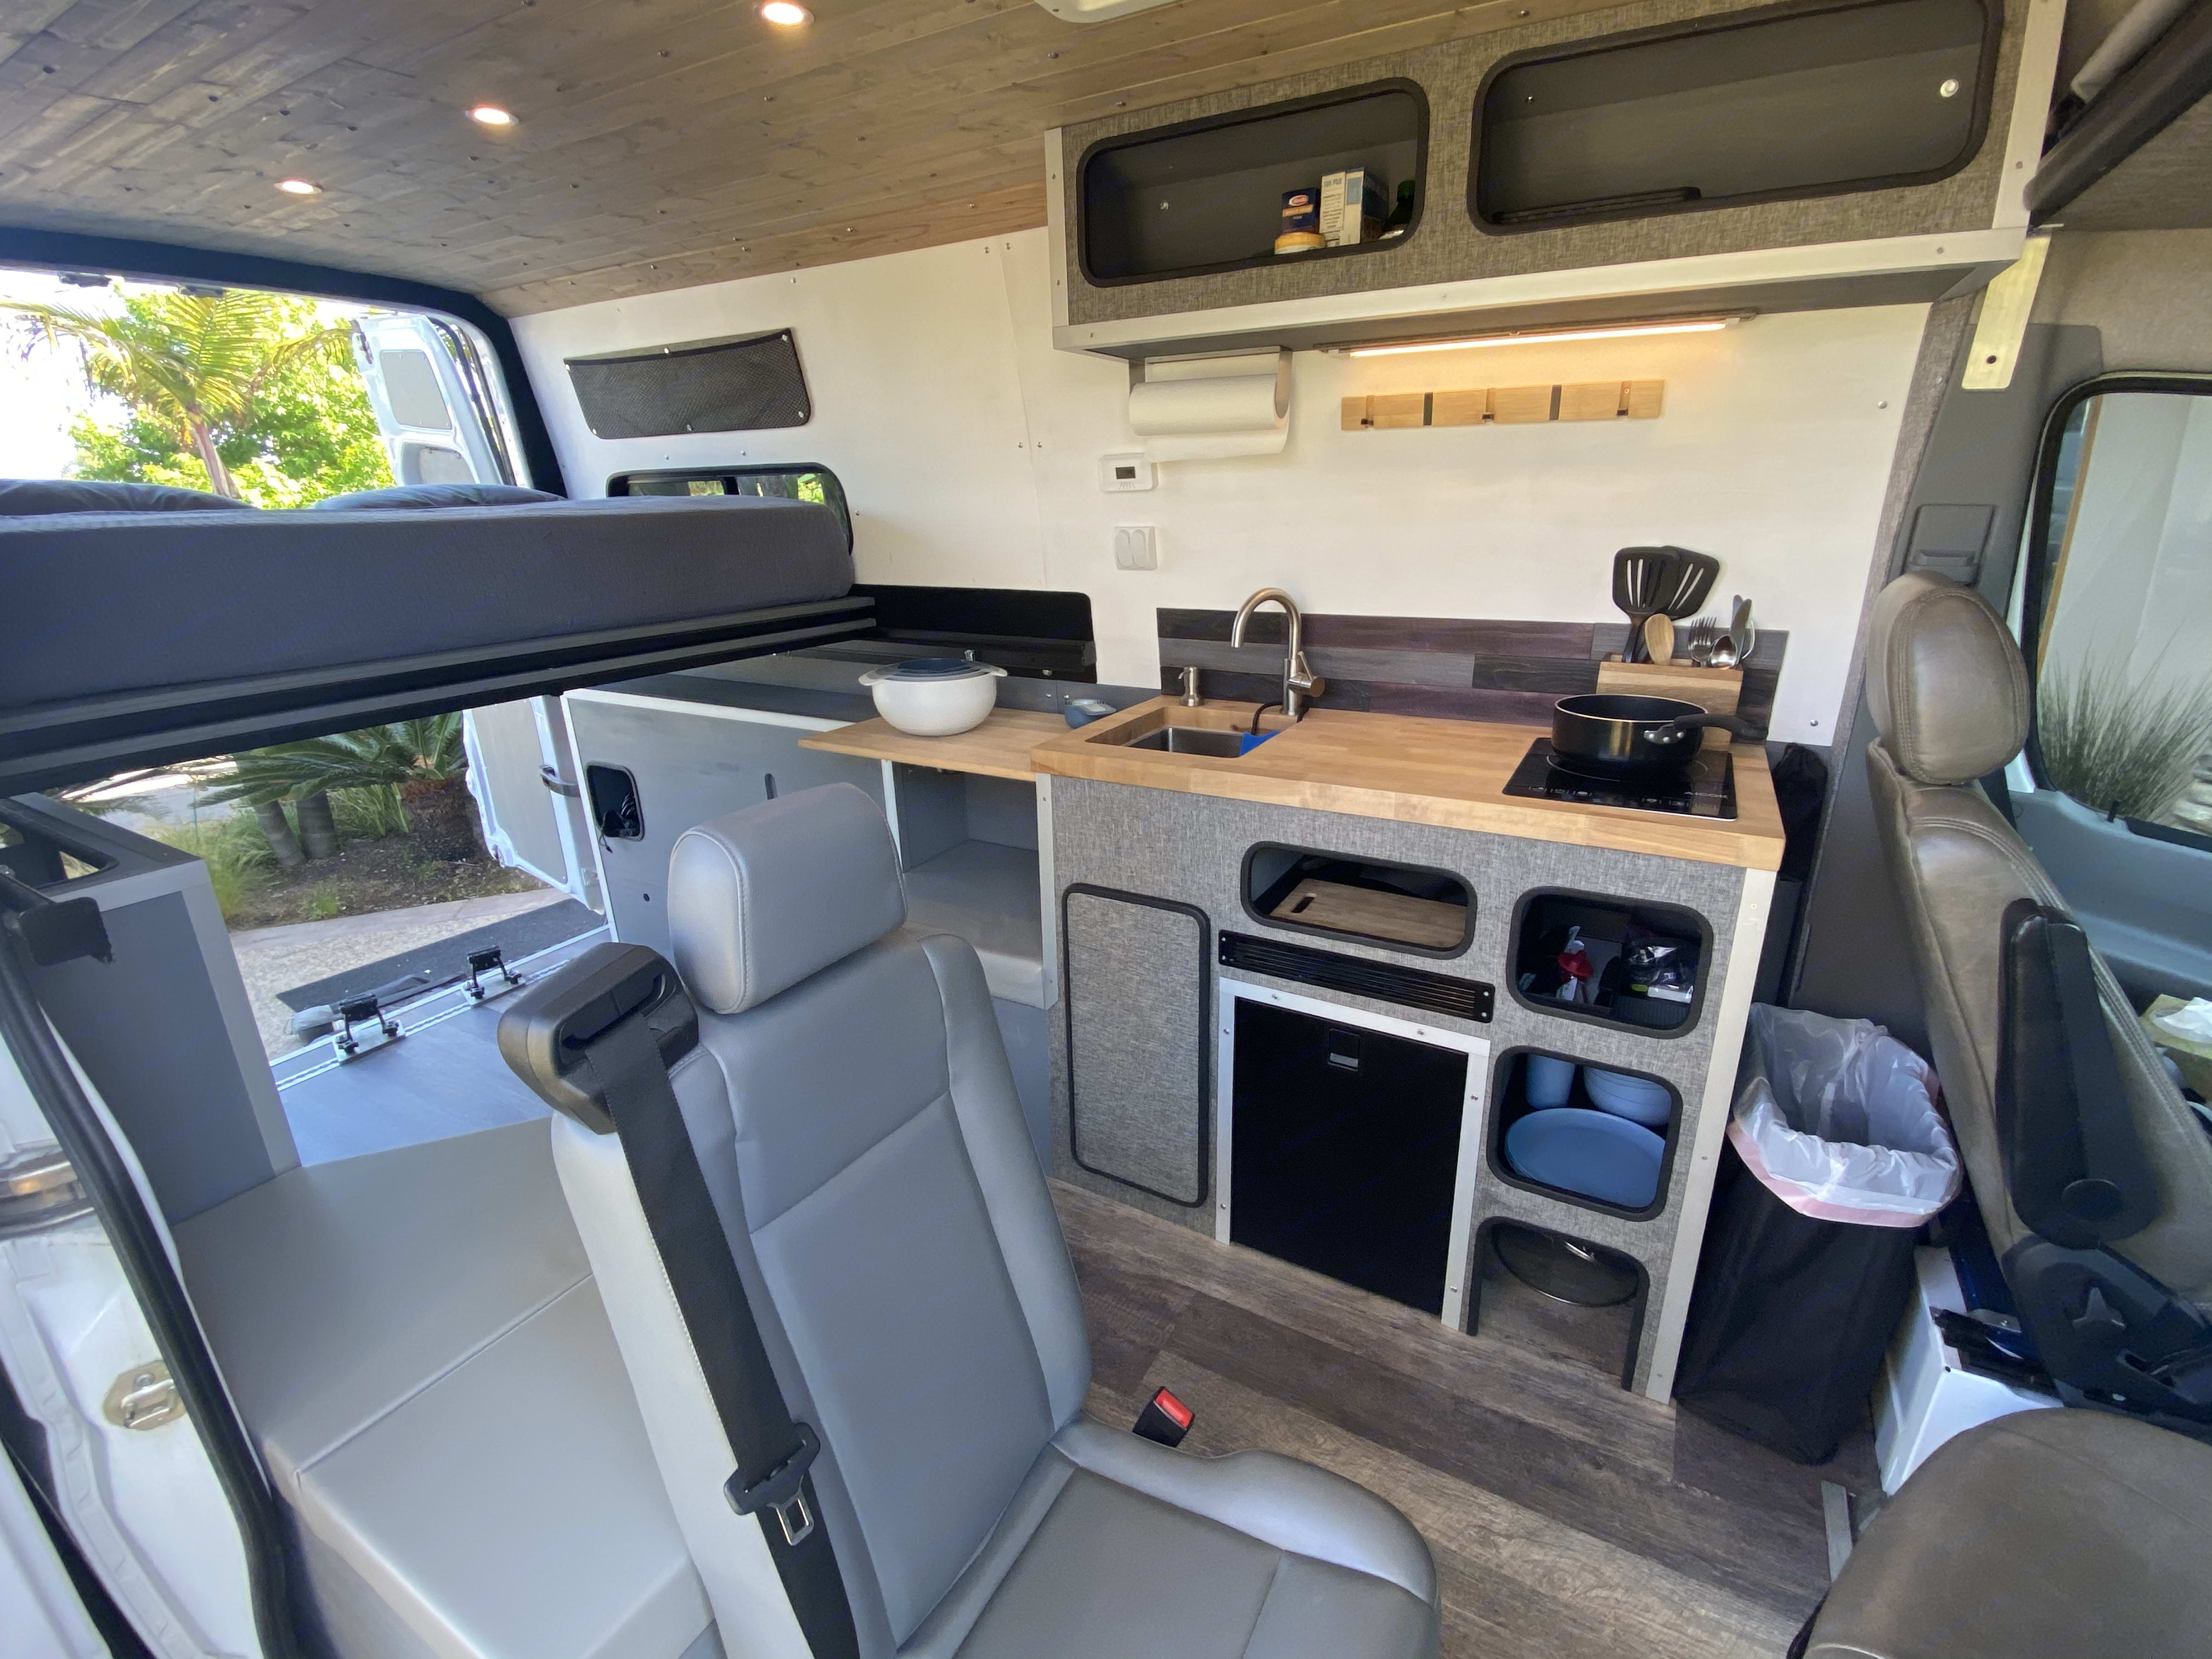 The back passenger seat is removable and can be provided for your use or removed prior to rental. Mercedes Sprinter 2015